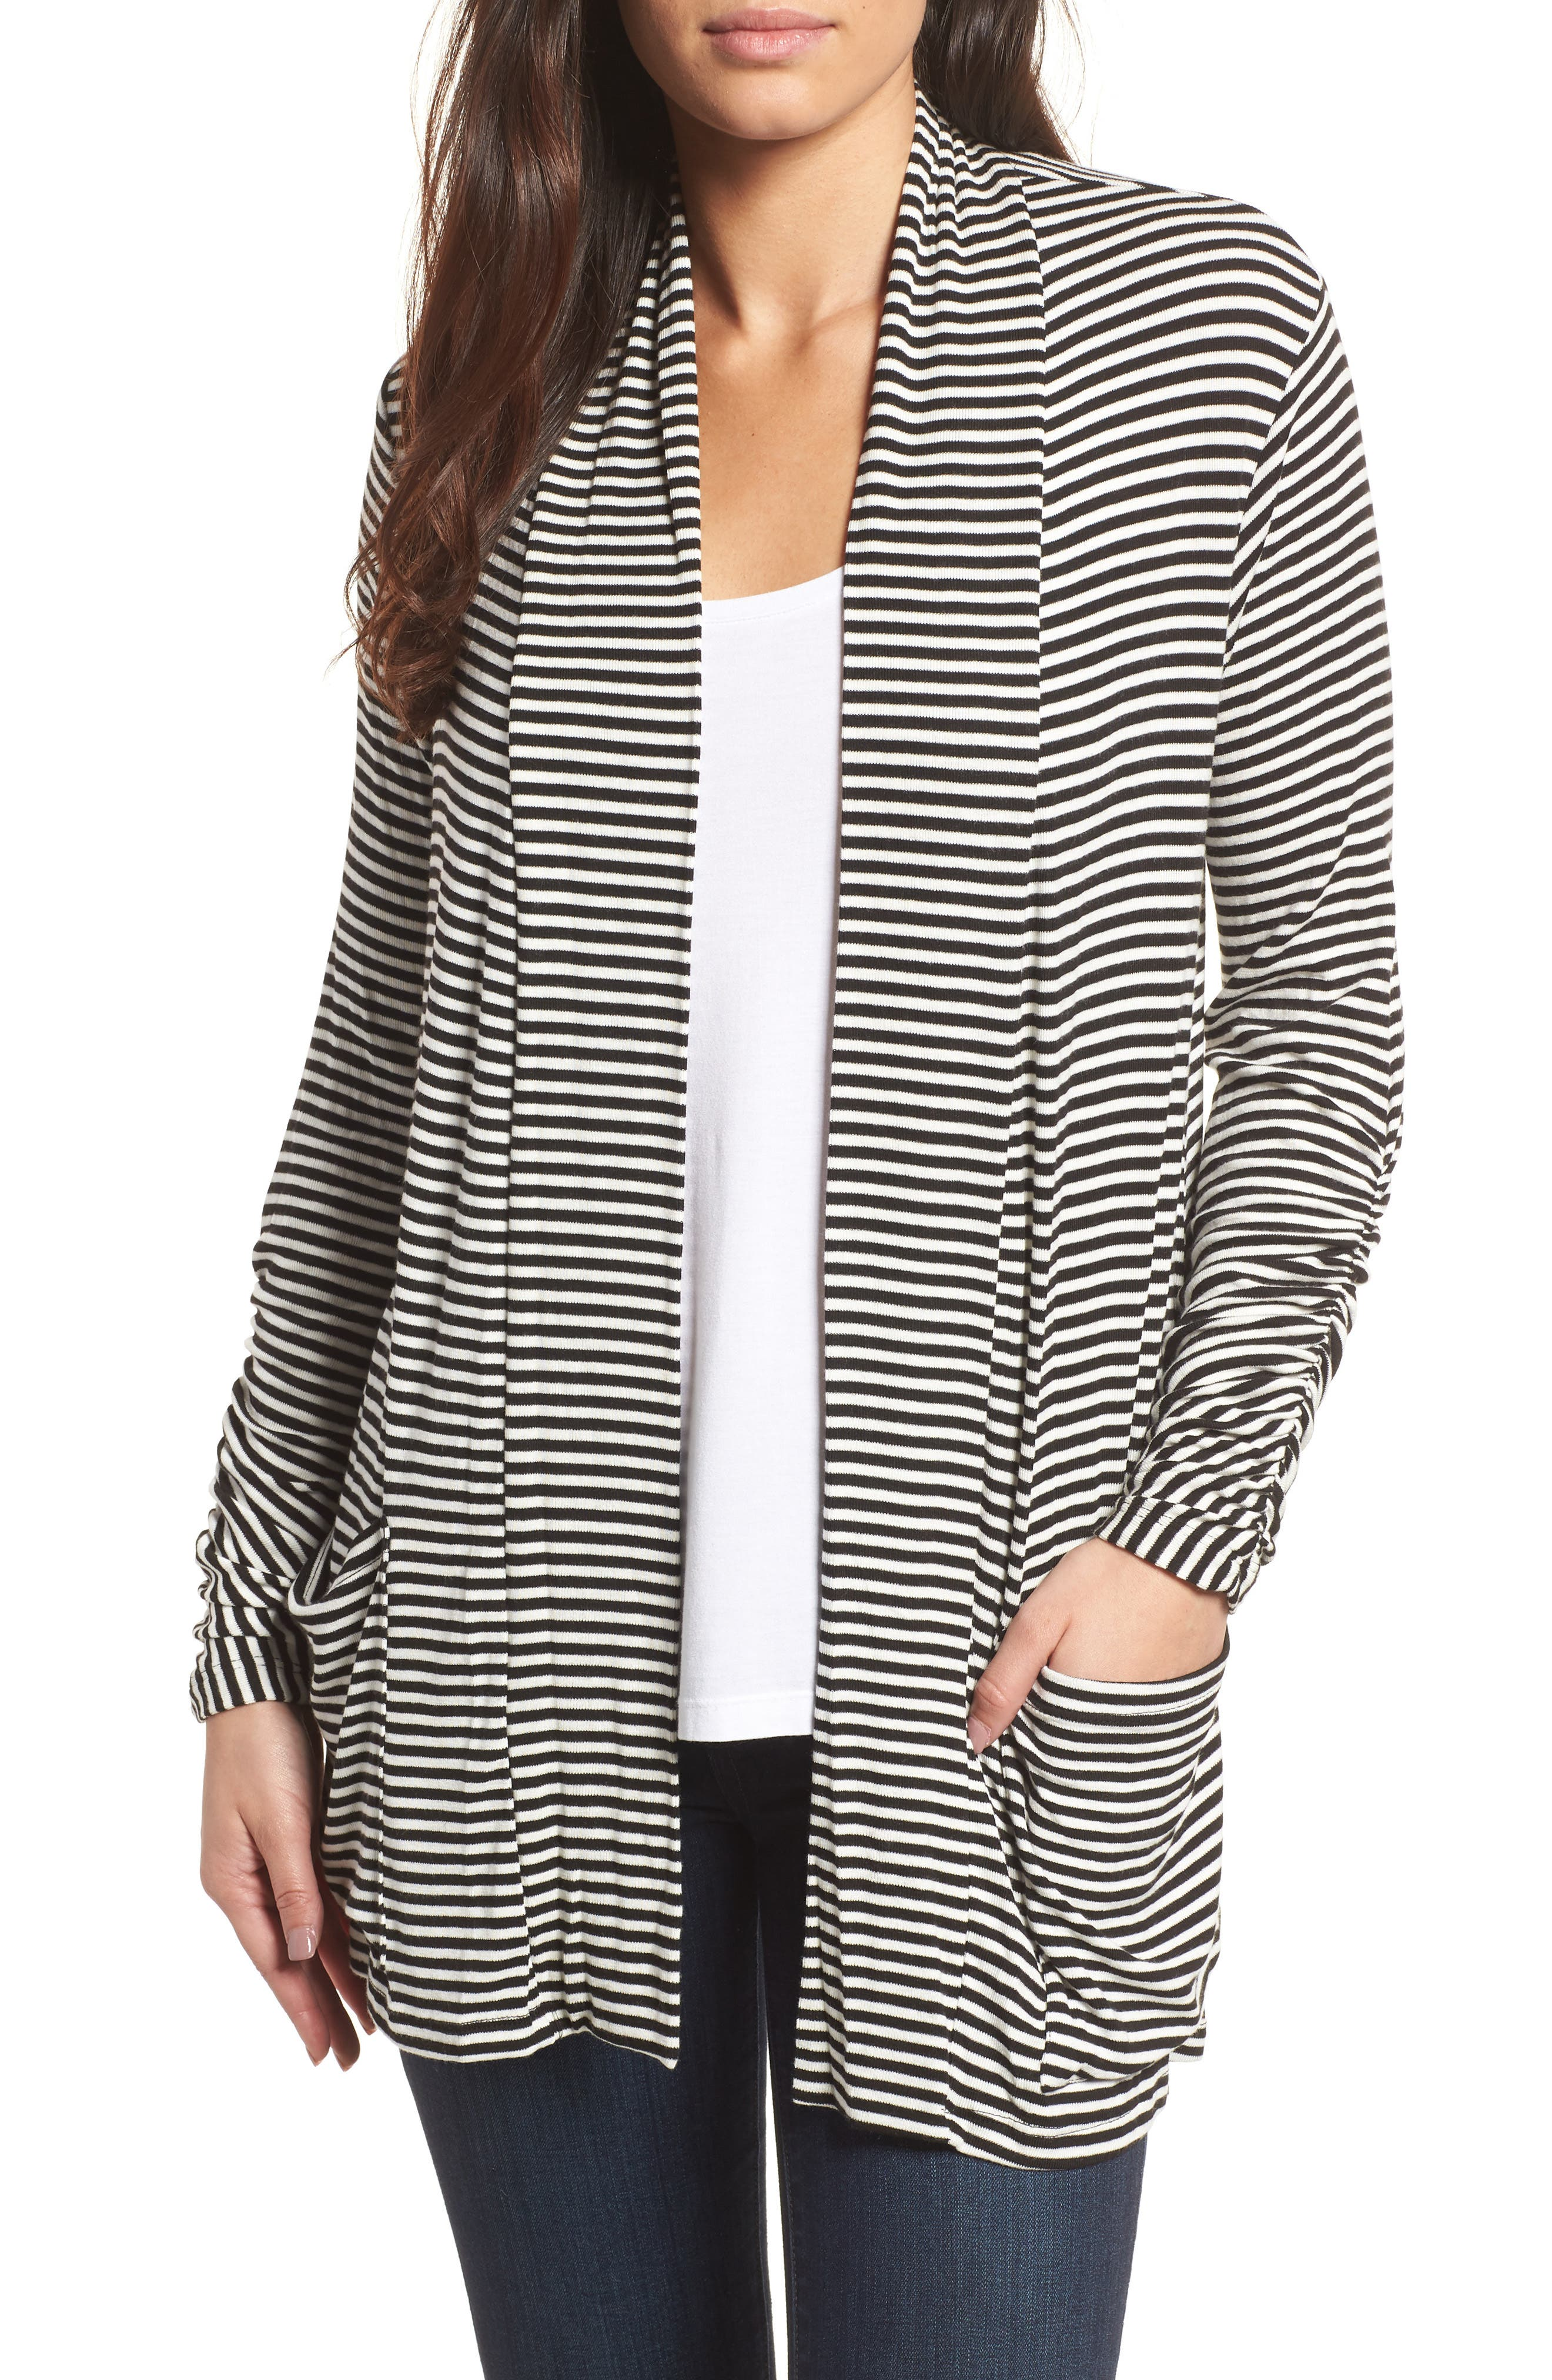 Ruched Sleeve Cardigan,                         Main,                         color, Black/ White Stripe